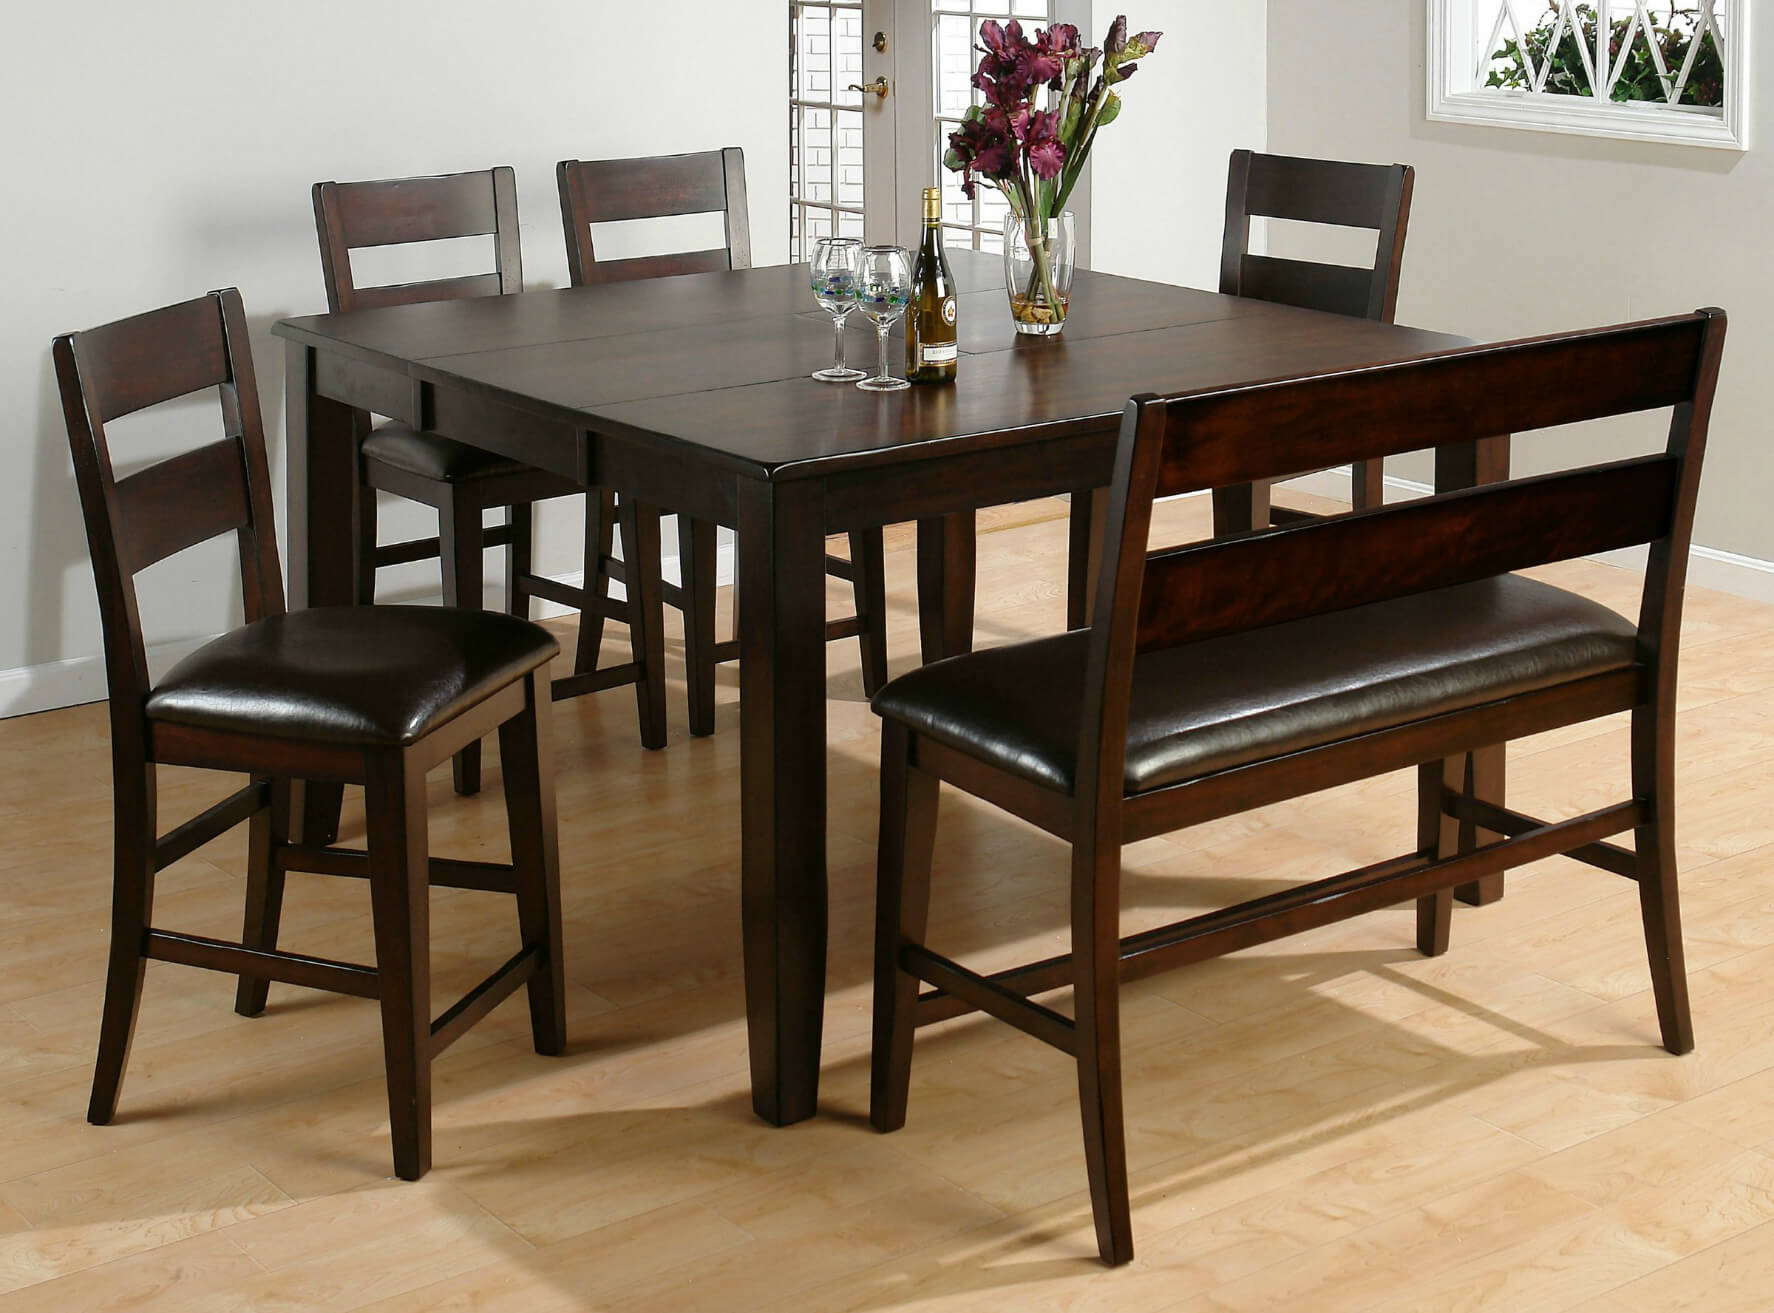 Fiestund Small Kitchen Table Sets